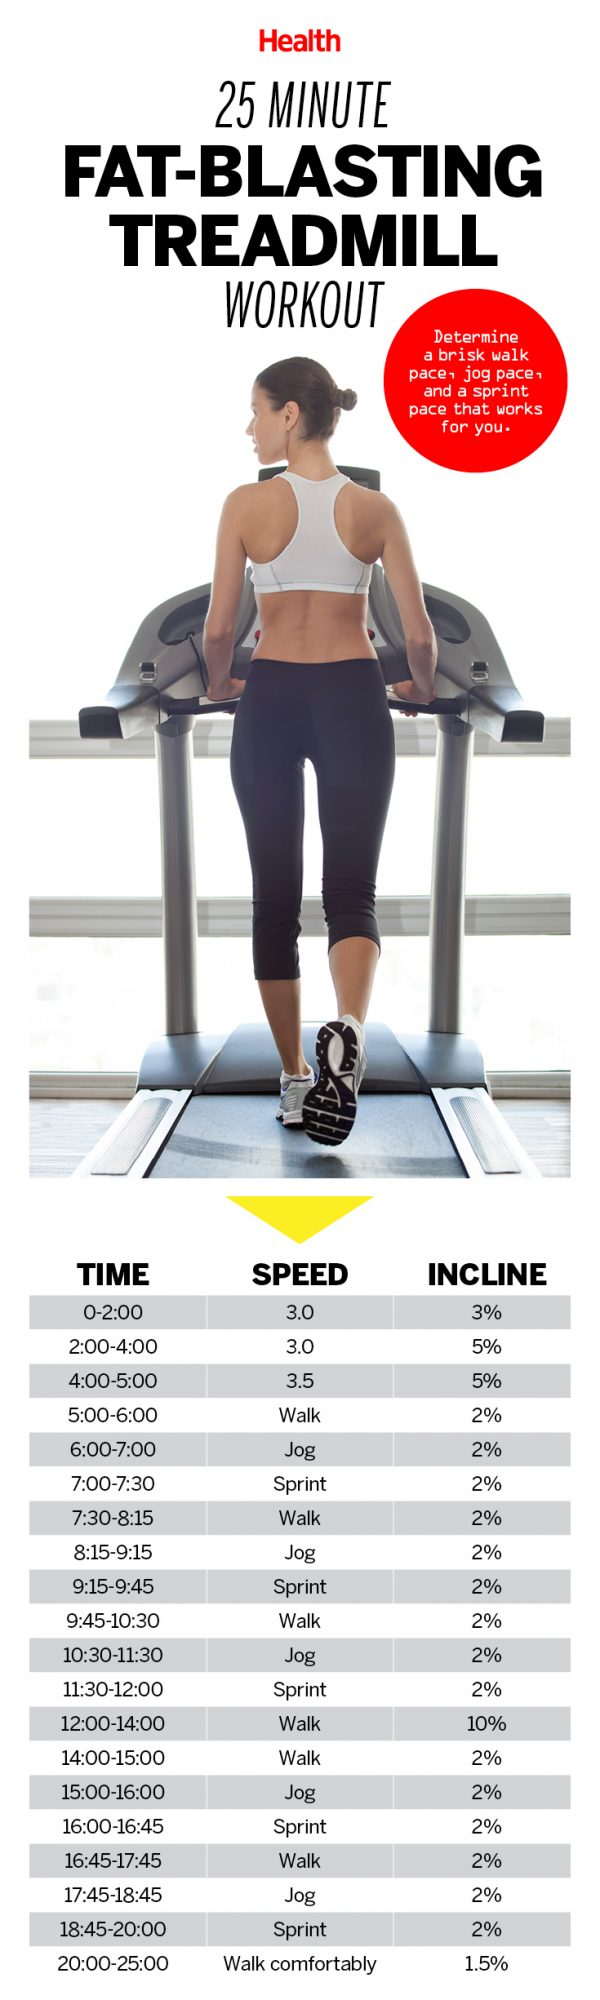 Check Out The Pros And Cons Of Running On A Treadmill